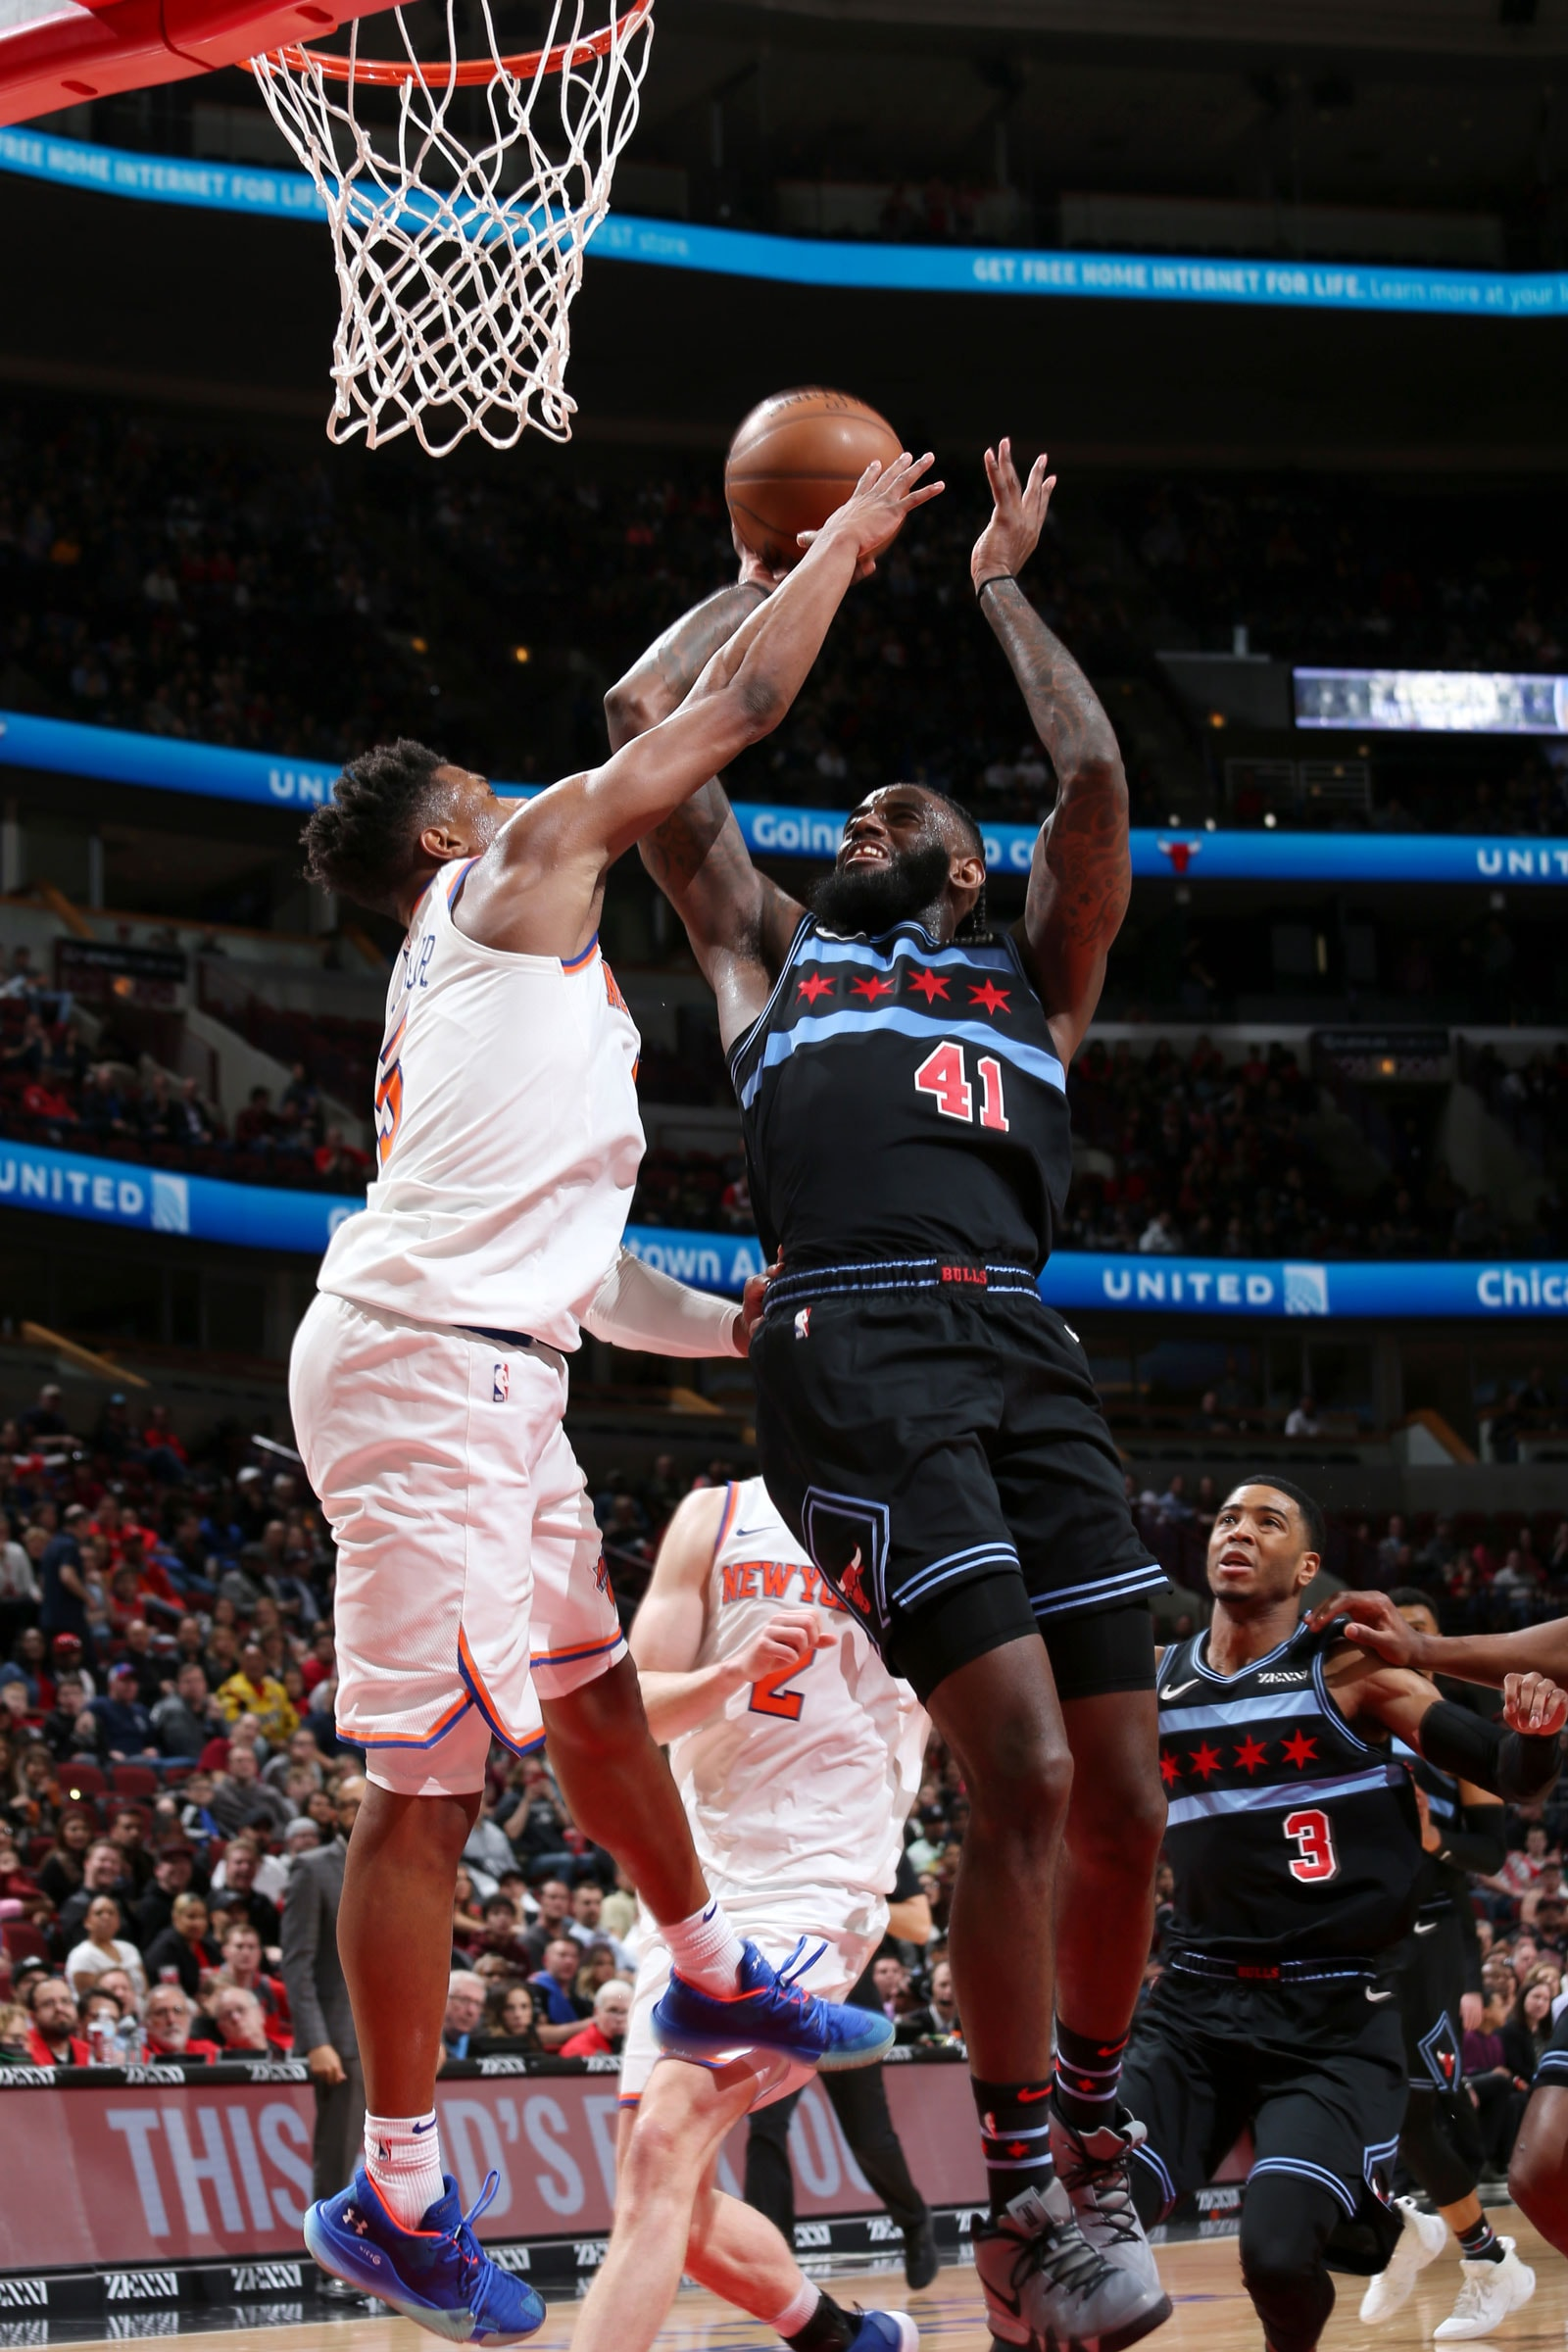 JaKarr Sampson #41 of the Chicago Bulls shoots the ball against the New York Knicks on April 9, 2019 at the United Center in Chicago, Illinois.